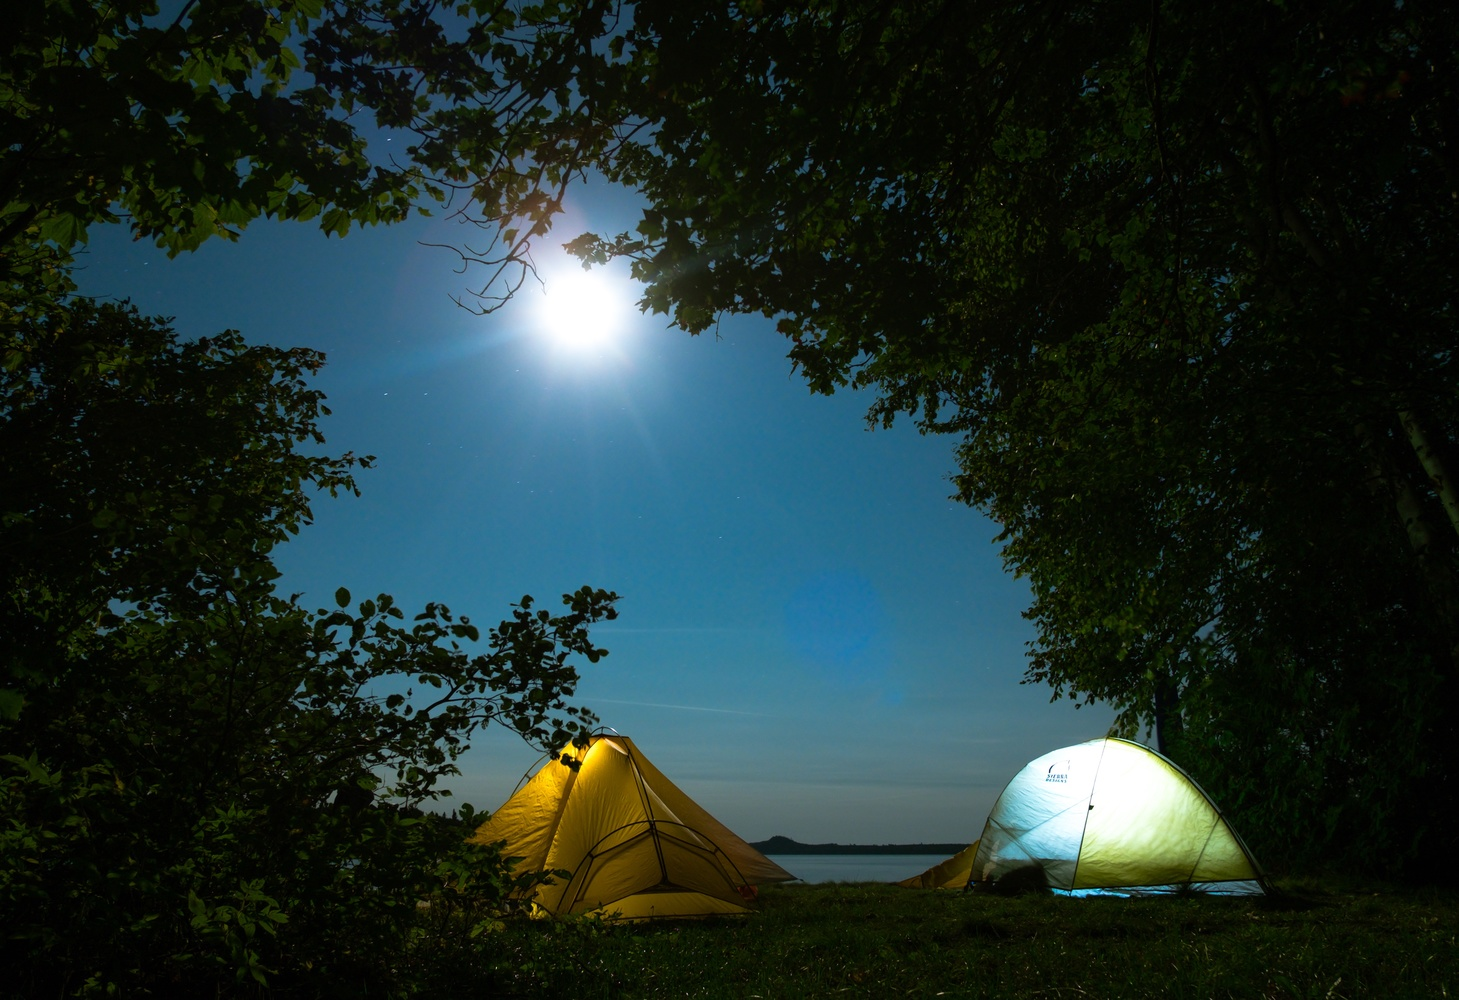 Tents in moonlight